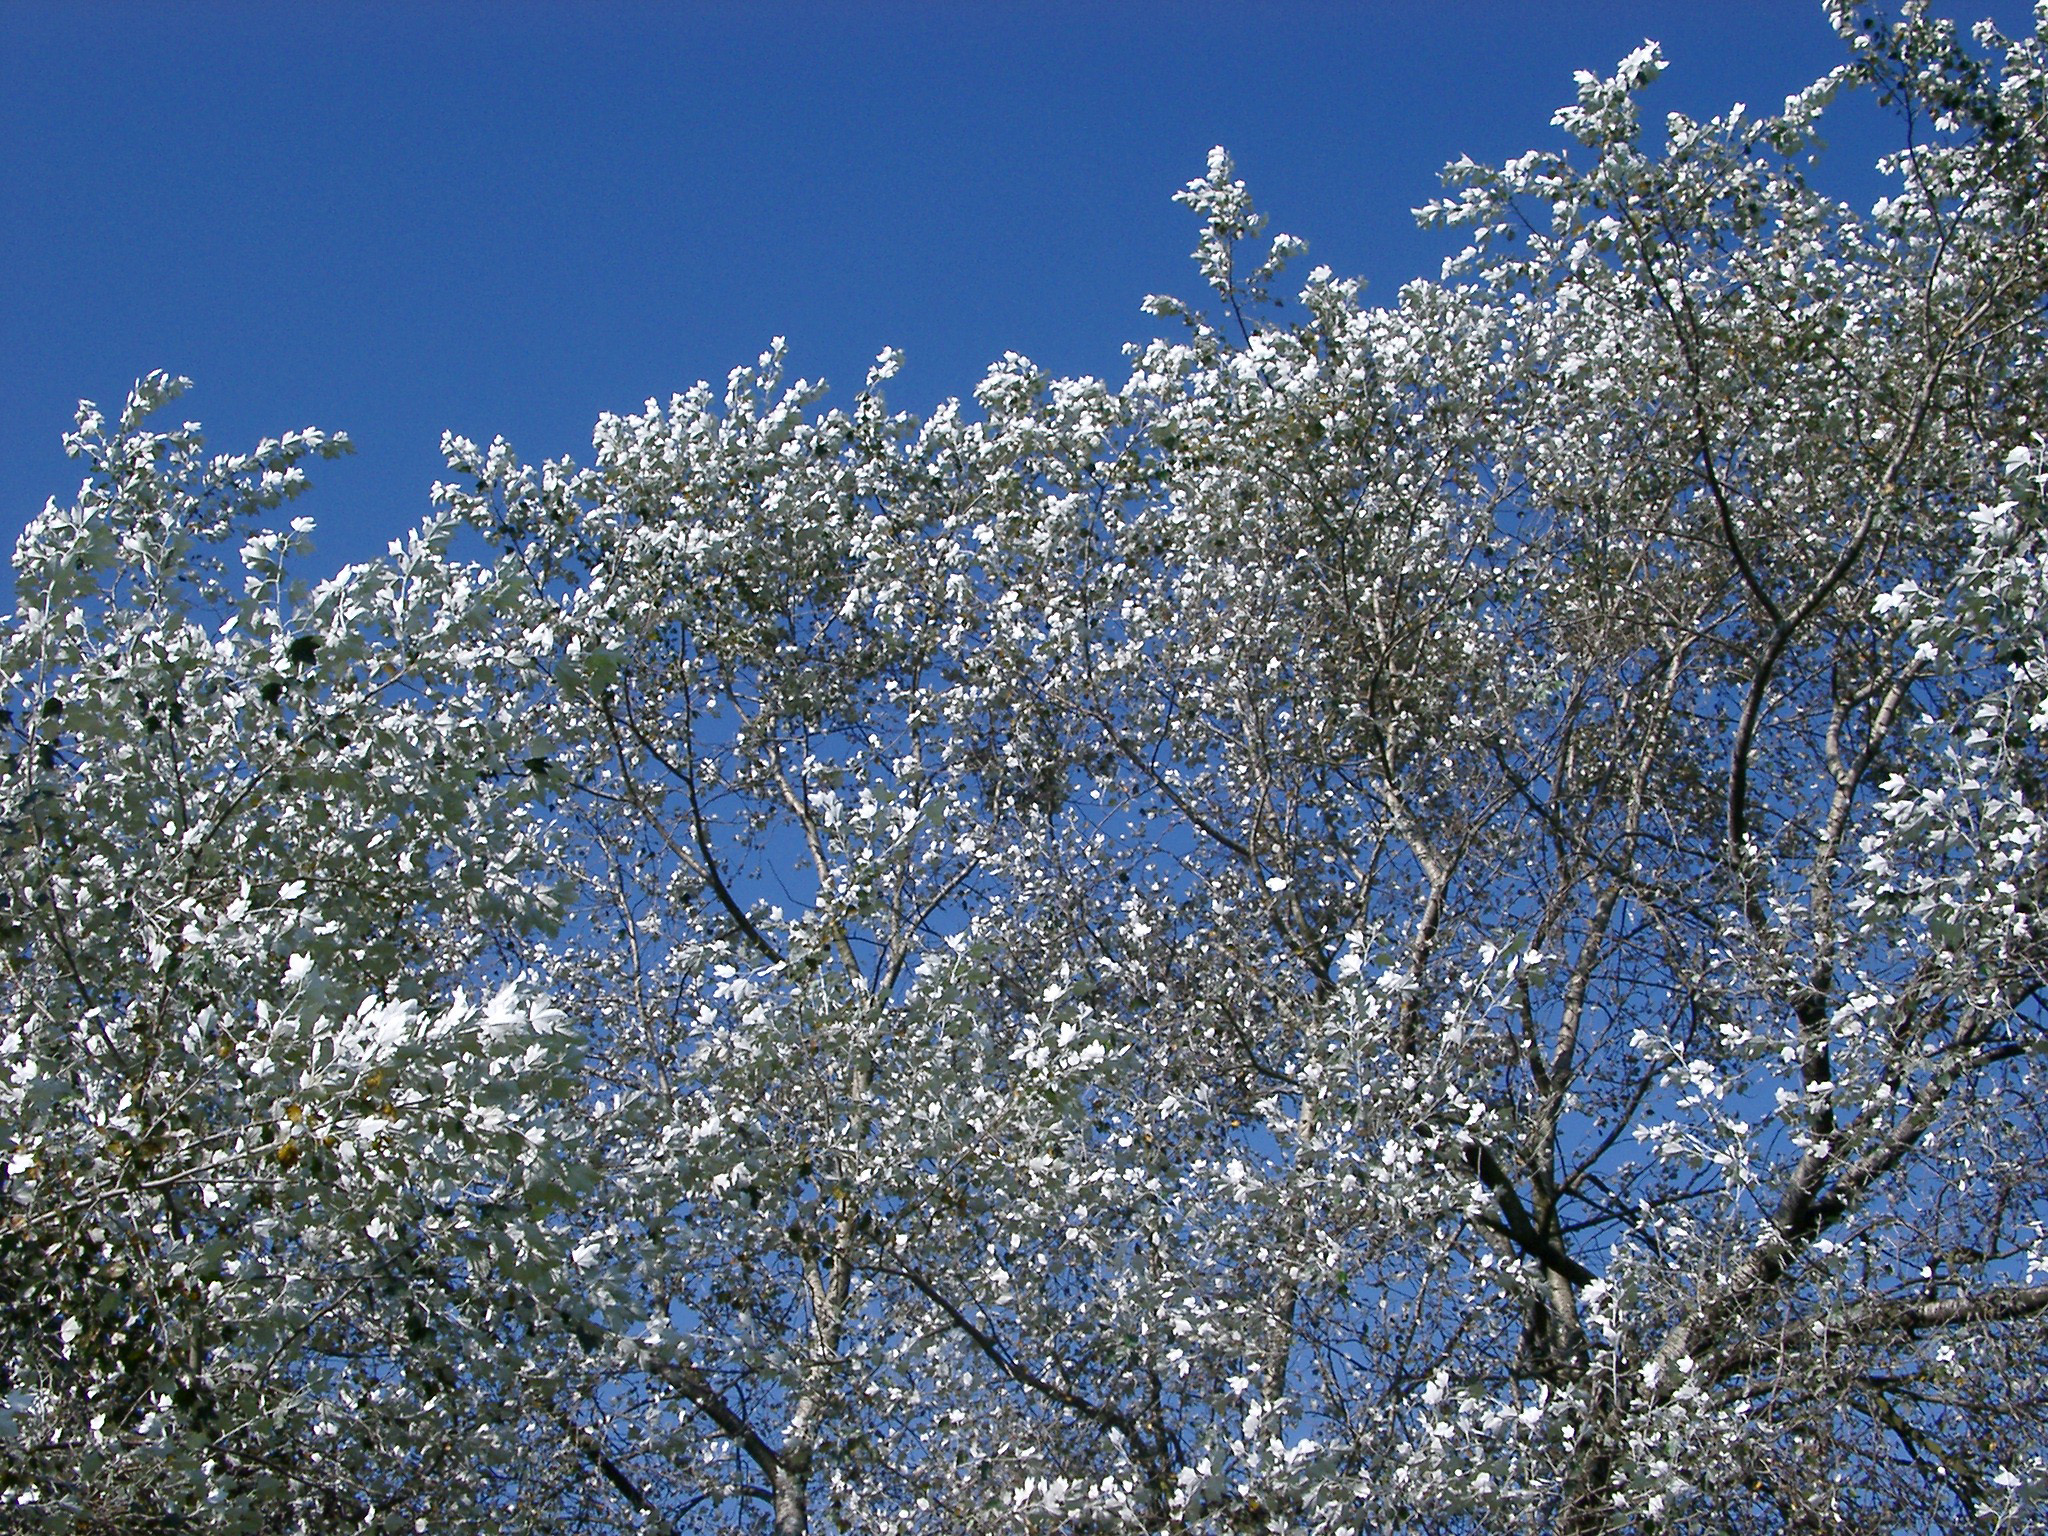 View looking up at the pretty silvery leaves of silver birch trees against a clear sunny blue sky in a nature background